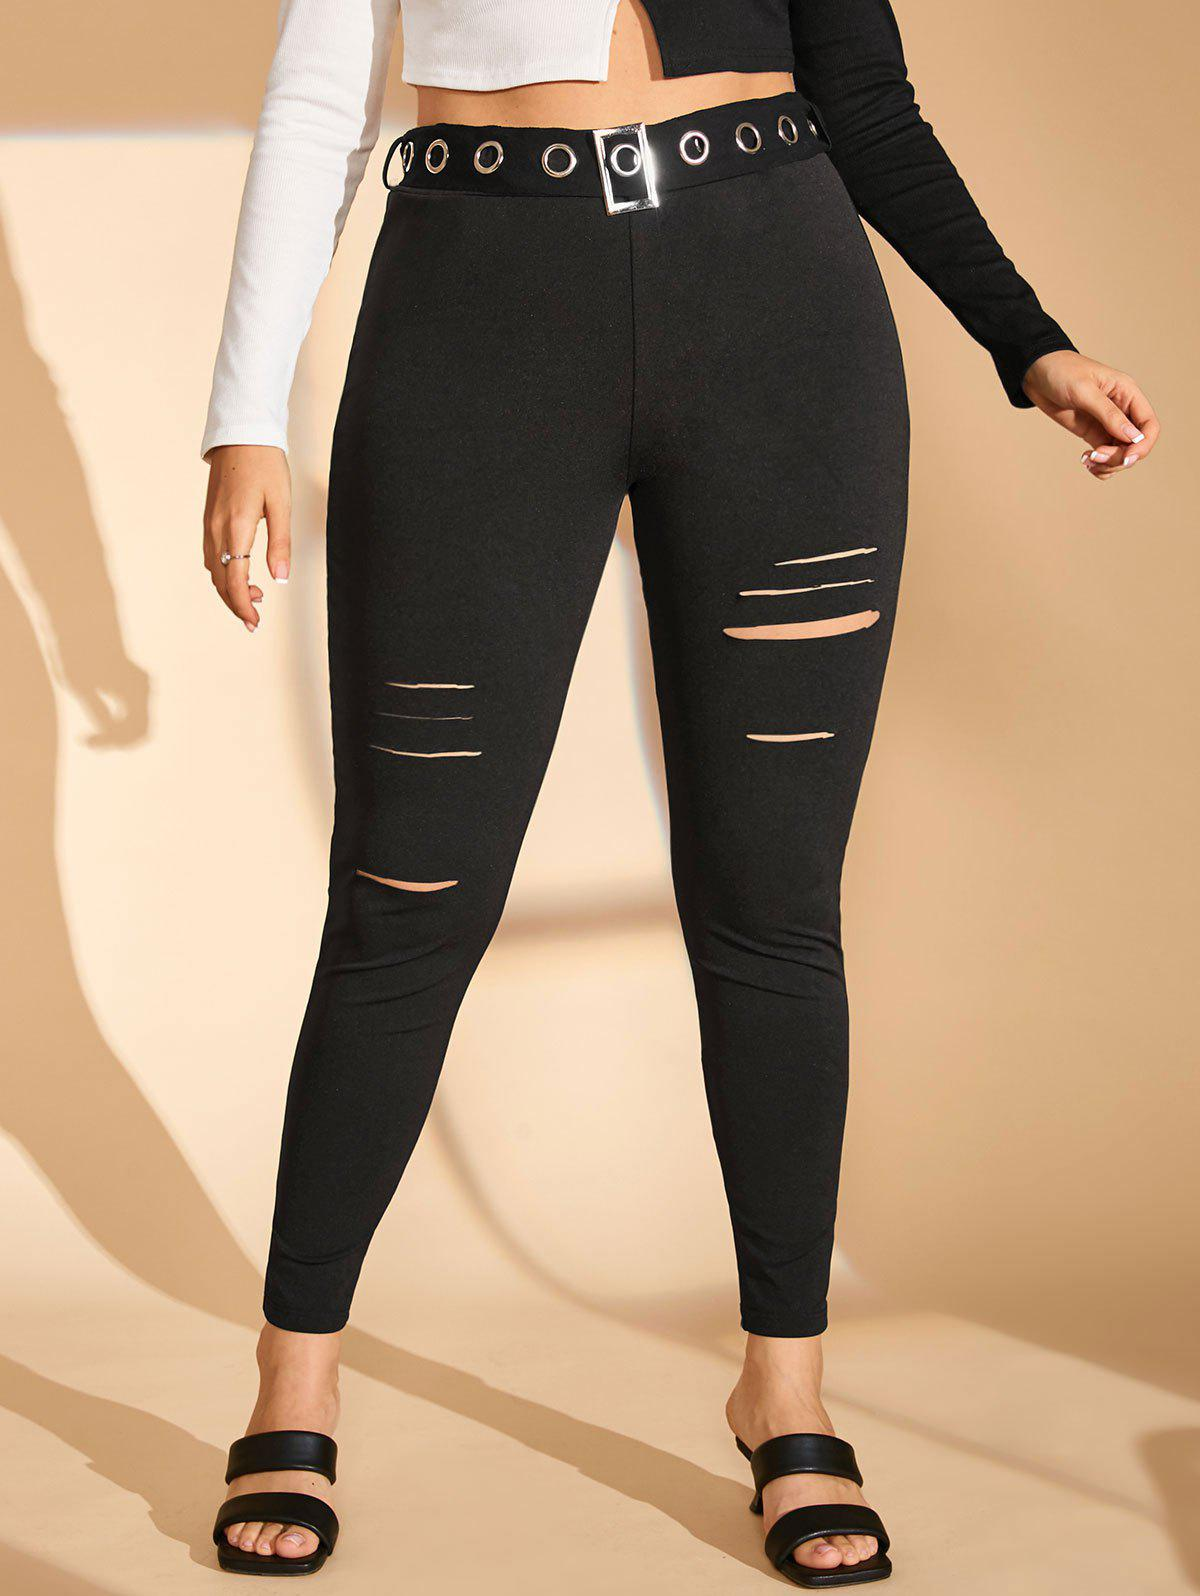 Fashion Grommet Buckled-belt Ladder Cutout Plus Size Skinny Pants